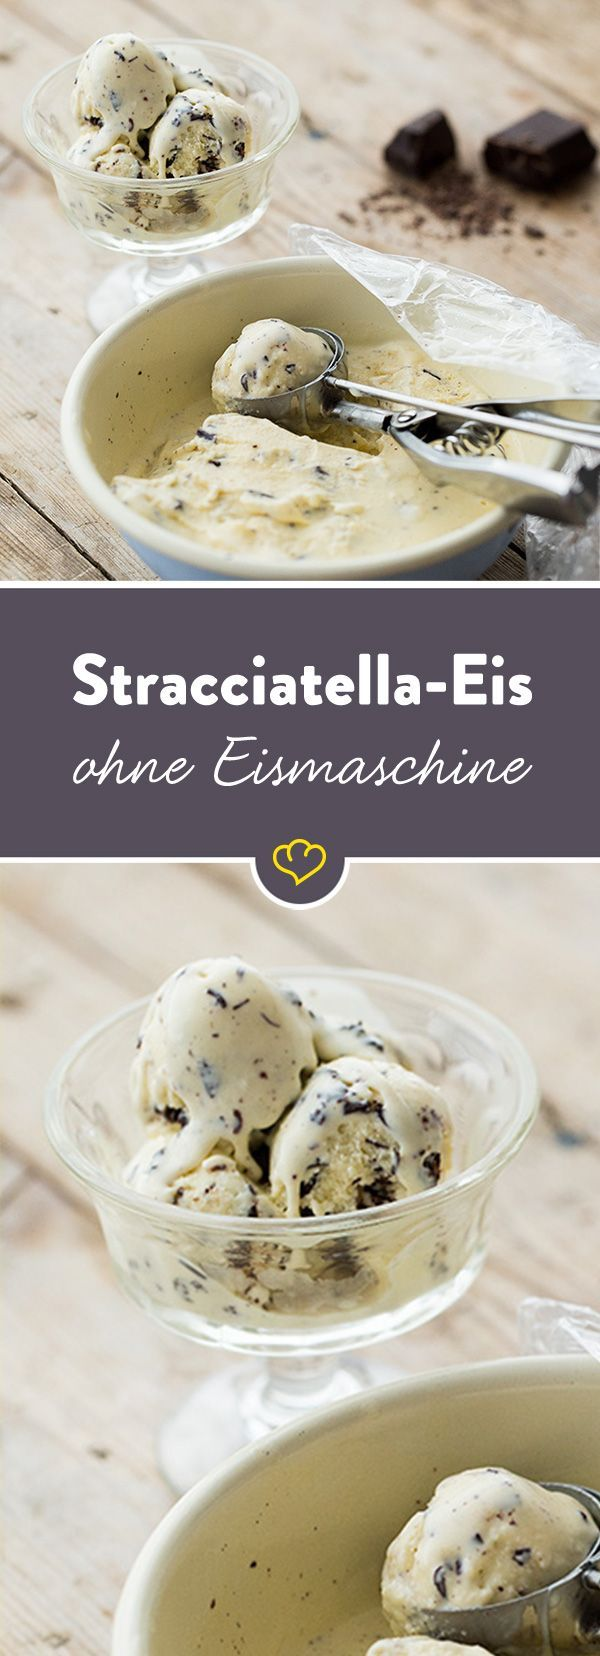 die besten 25 stracciatella eis ideen auf pinterest stracciatella kuchen eis eis baby und. Black Bedroom Furniture Sets. Home Design Ideas